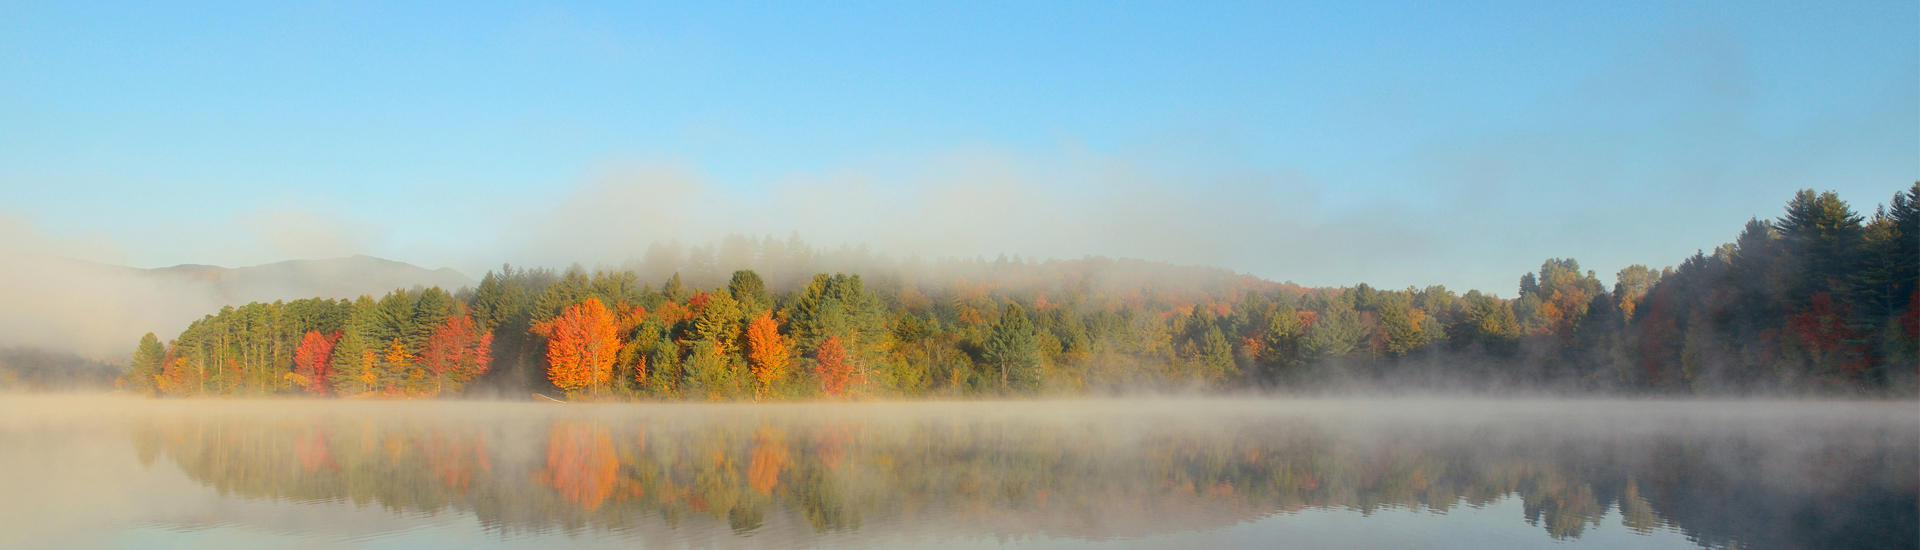 Fall foliage on a New Hampshire lake